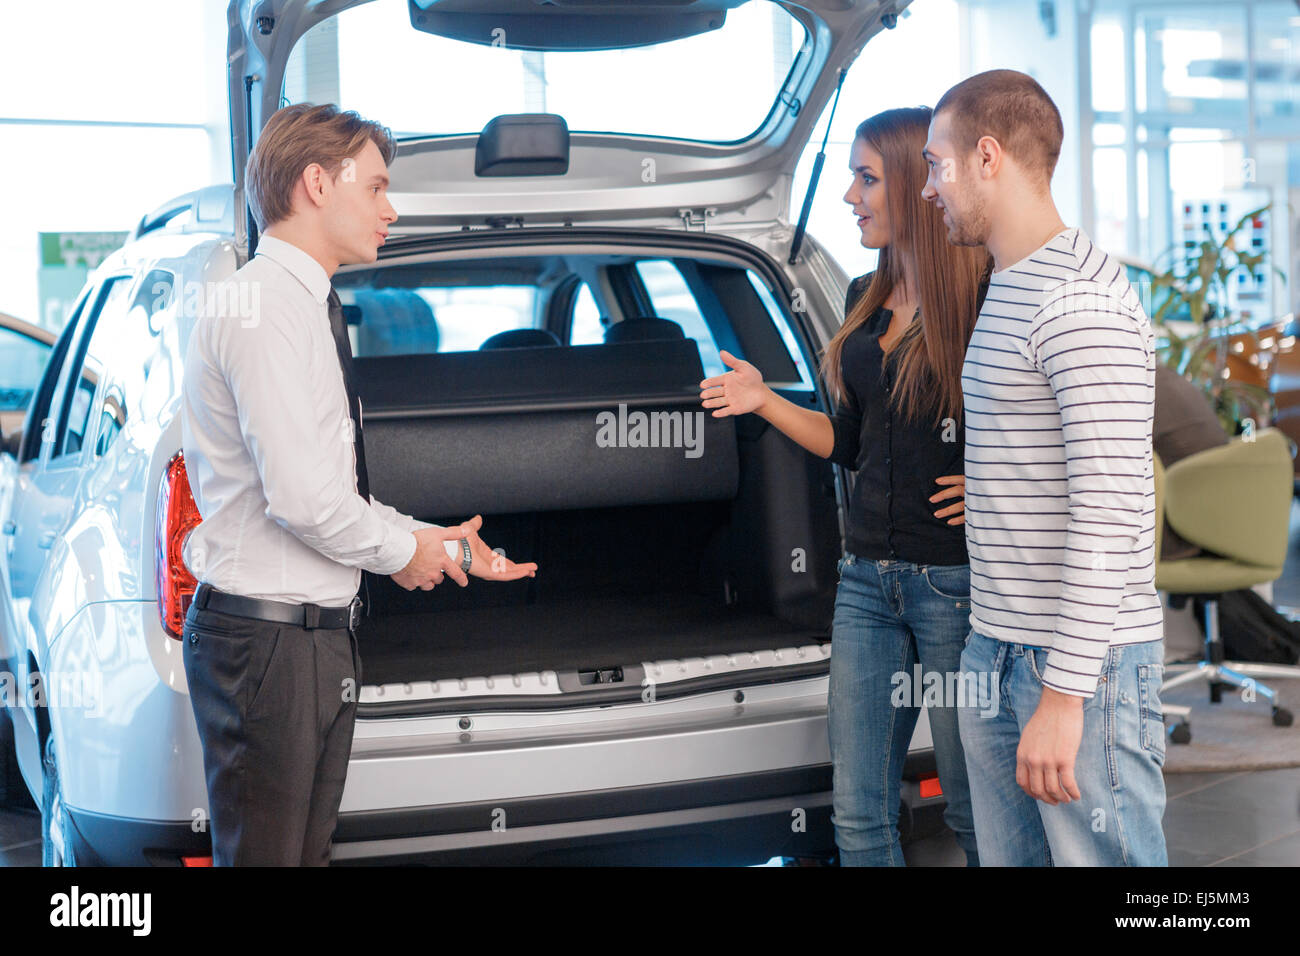 Salesman displaying trunk of the car to customers - Stock Image